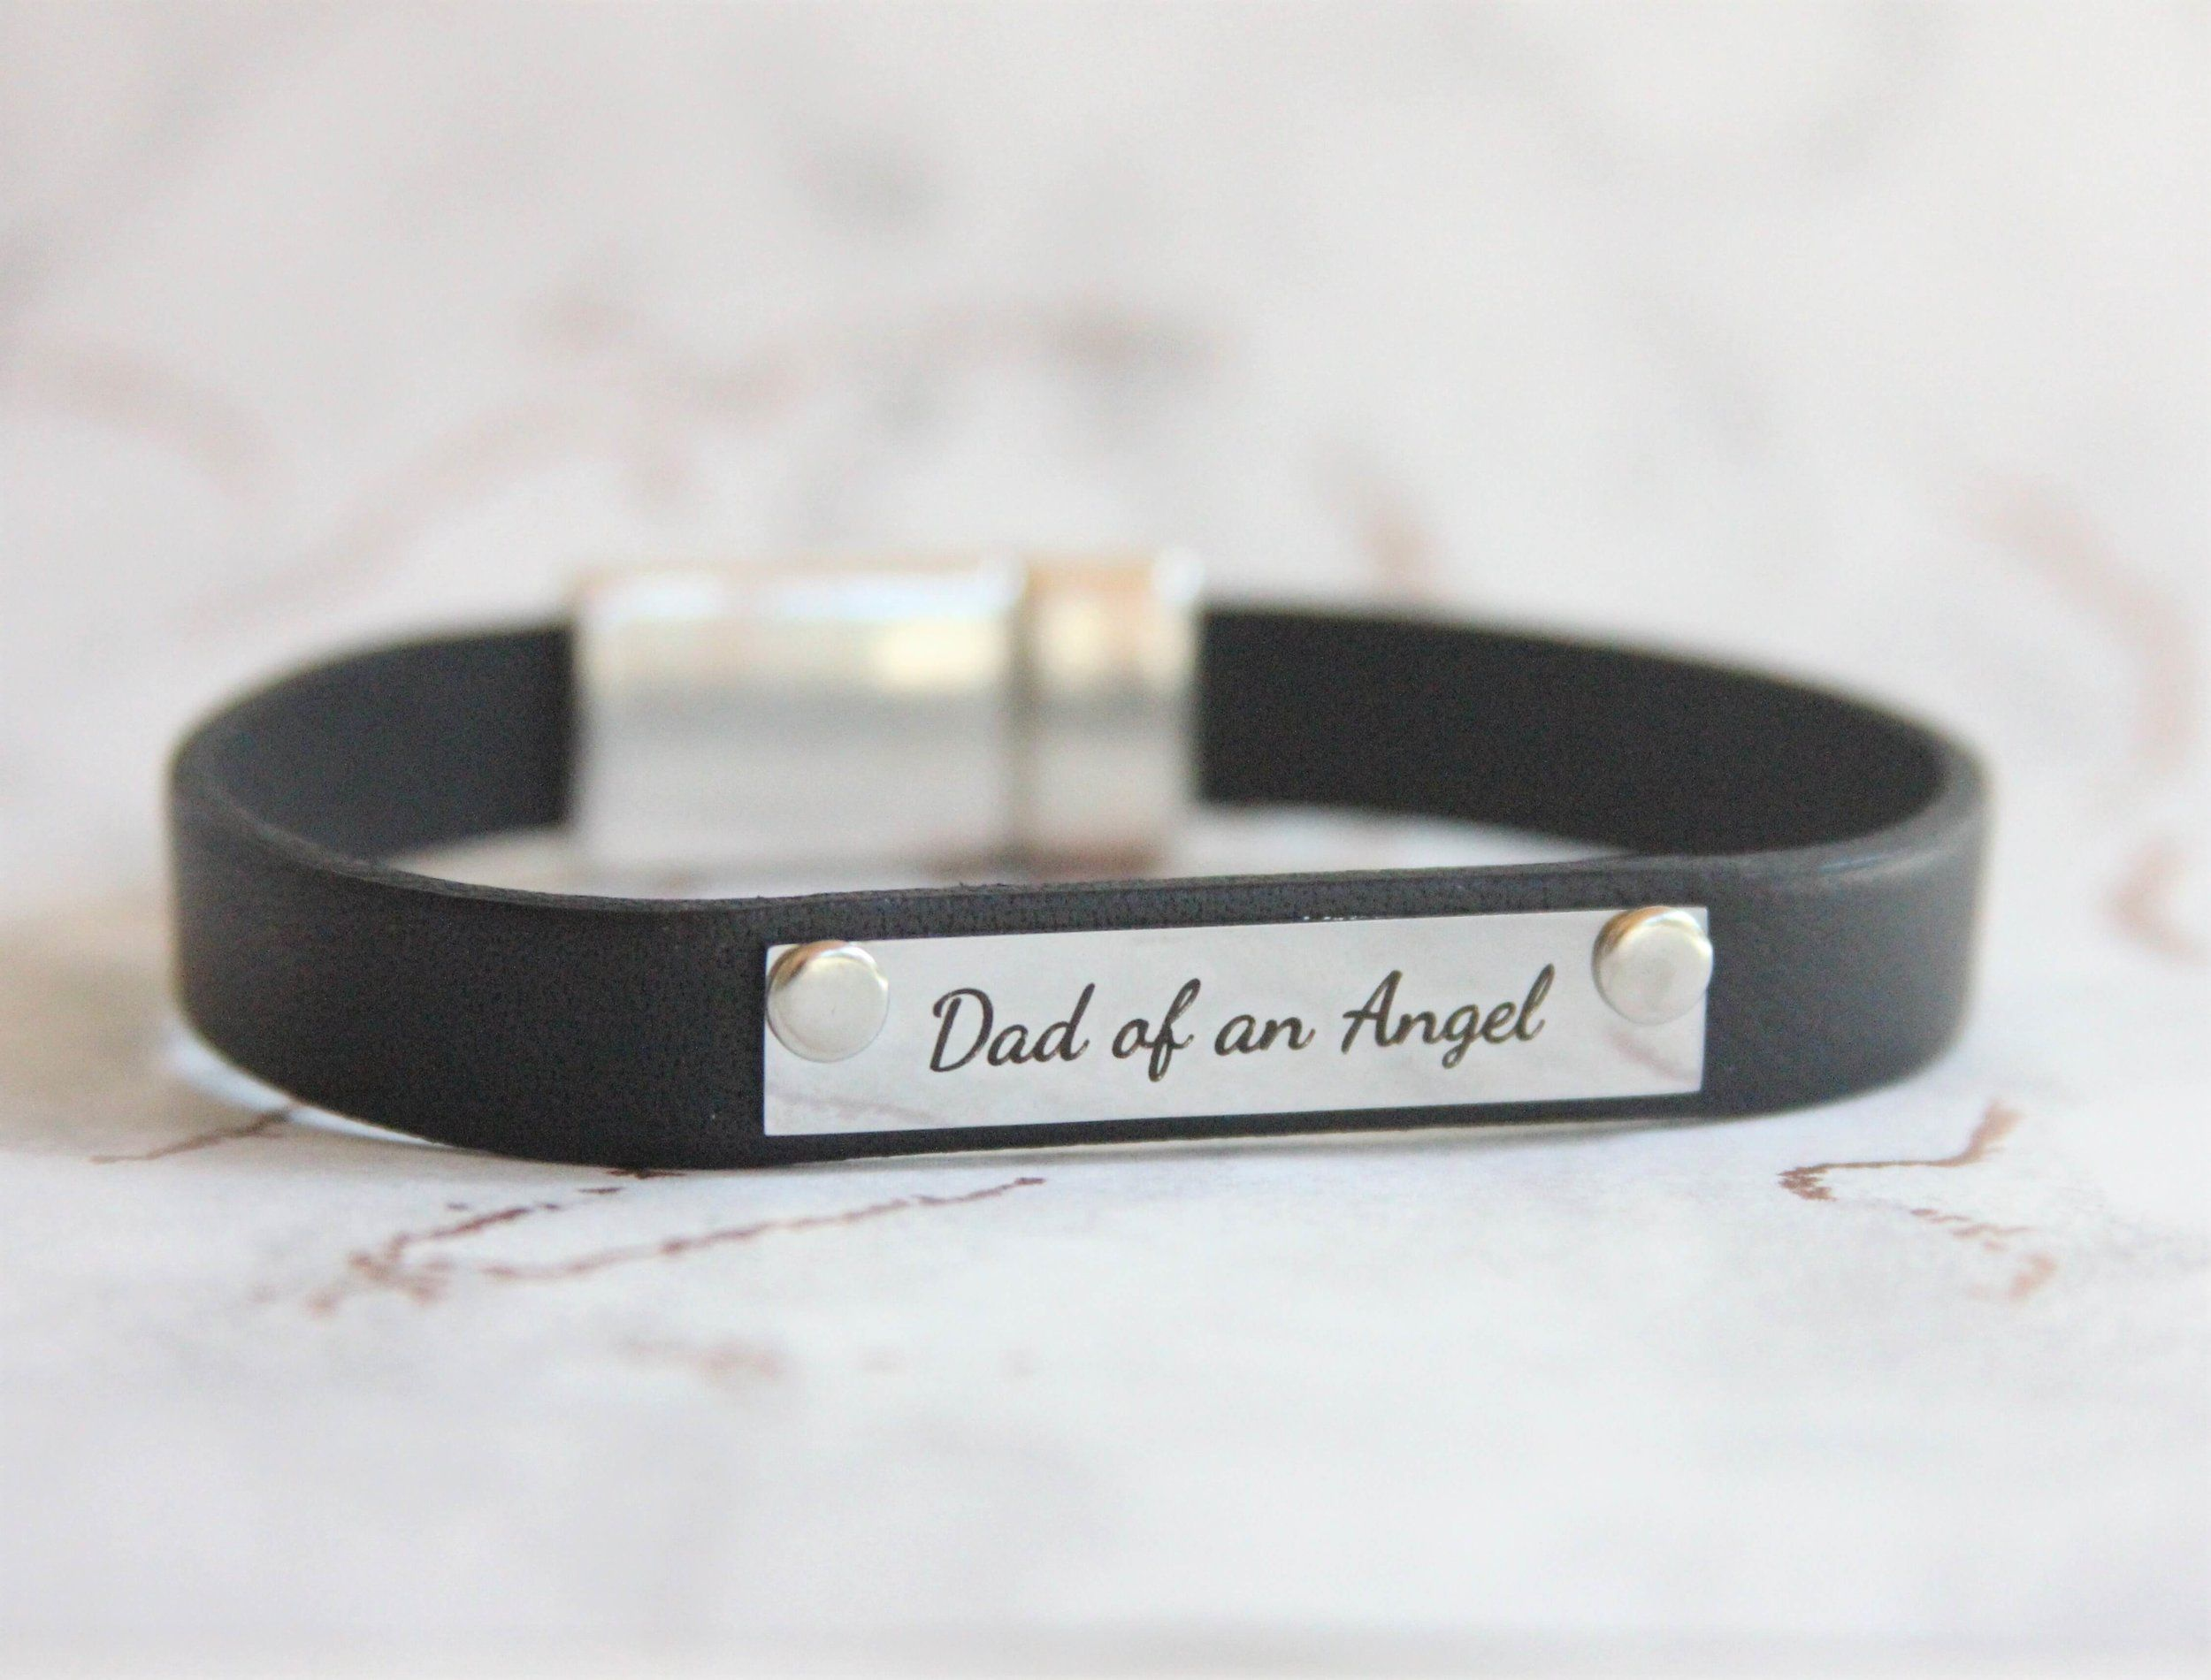 Memorial Leather Bracelet Gift Set For